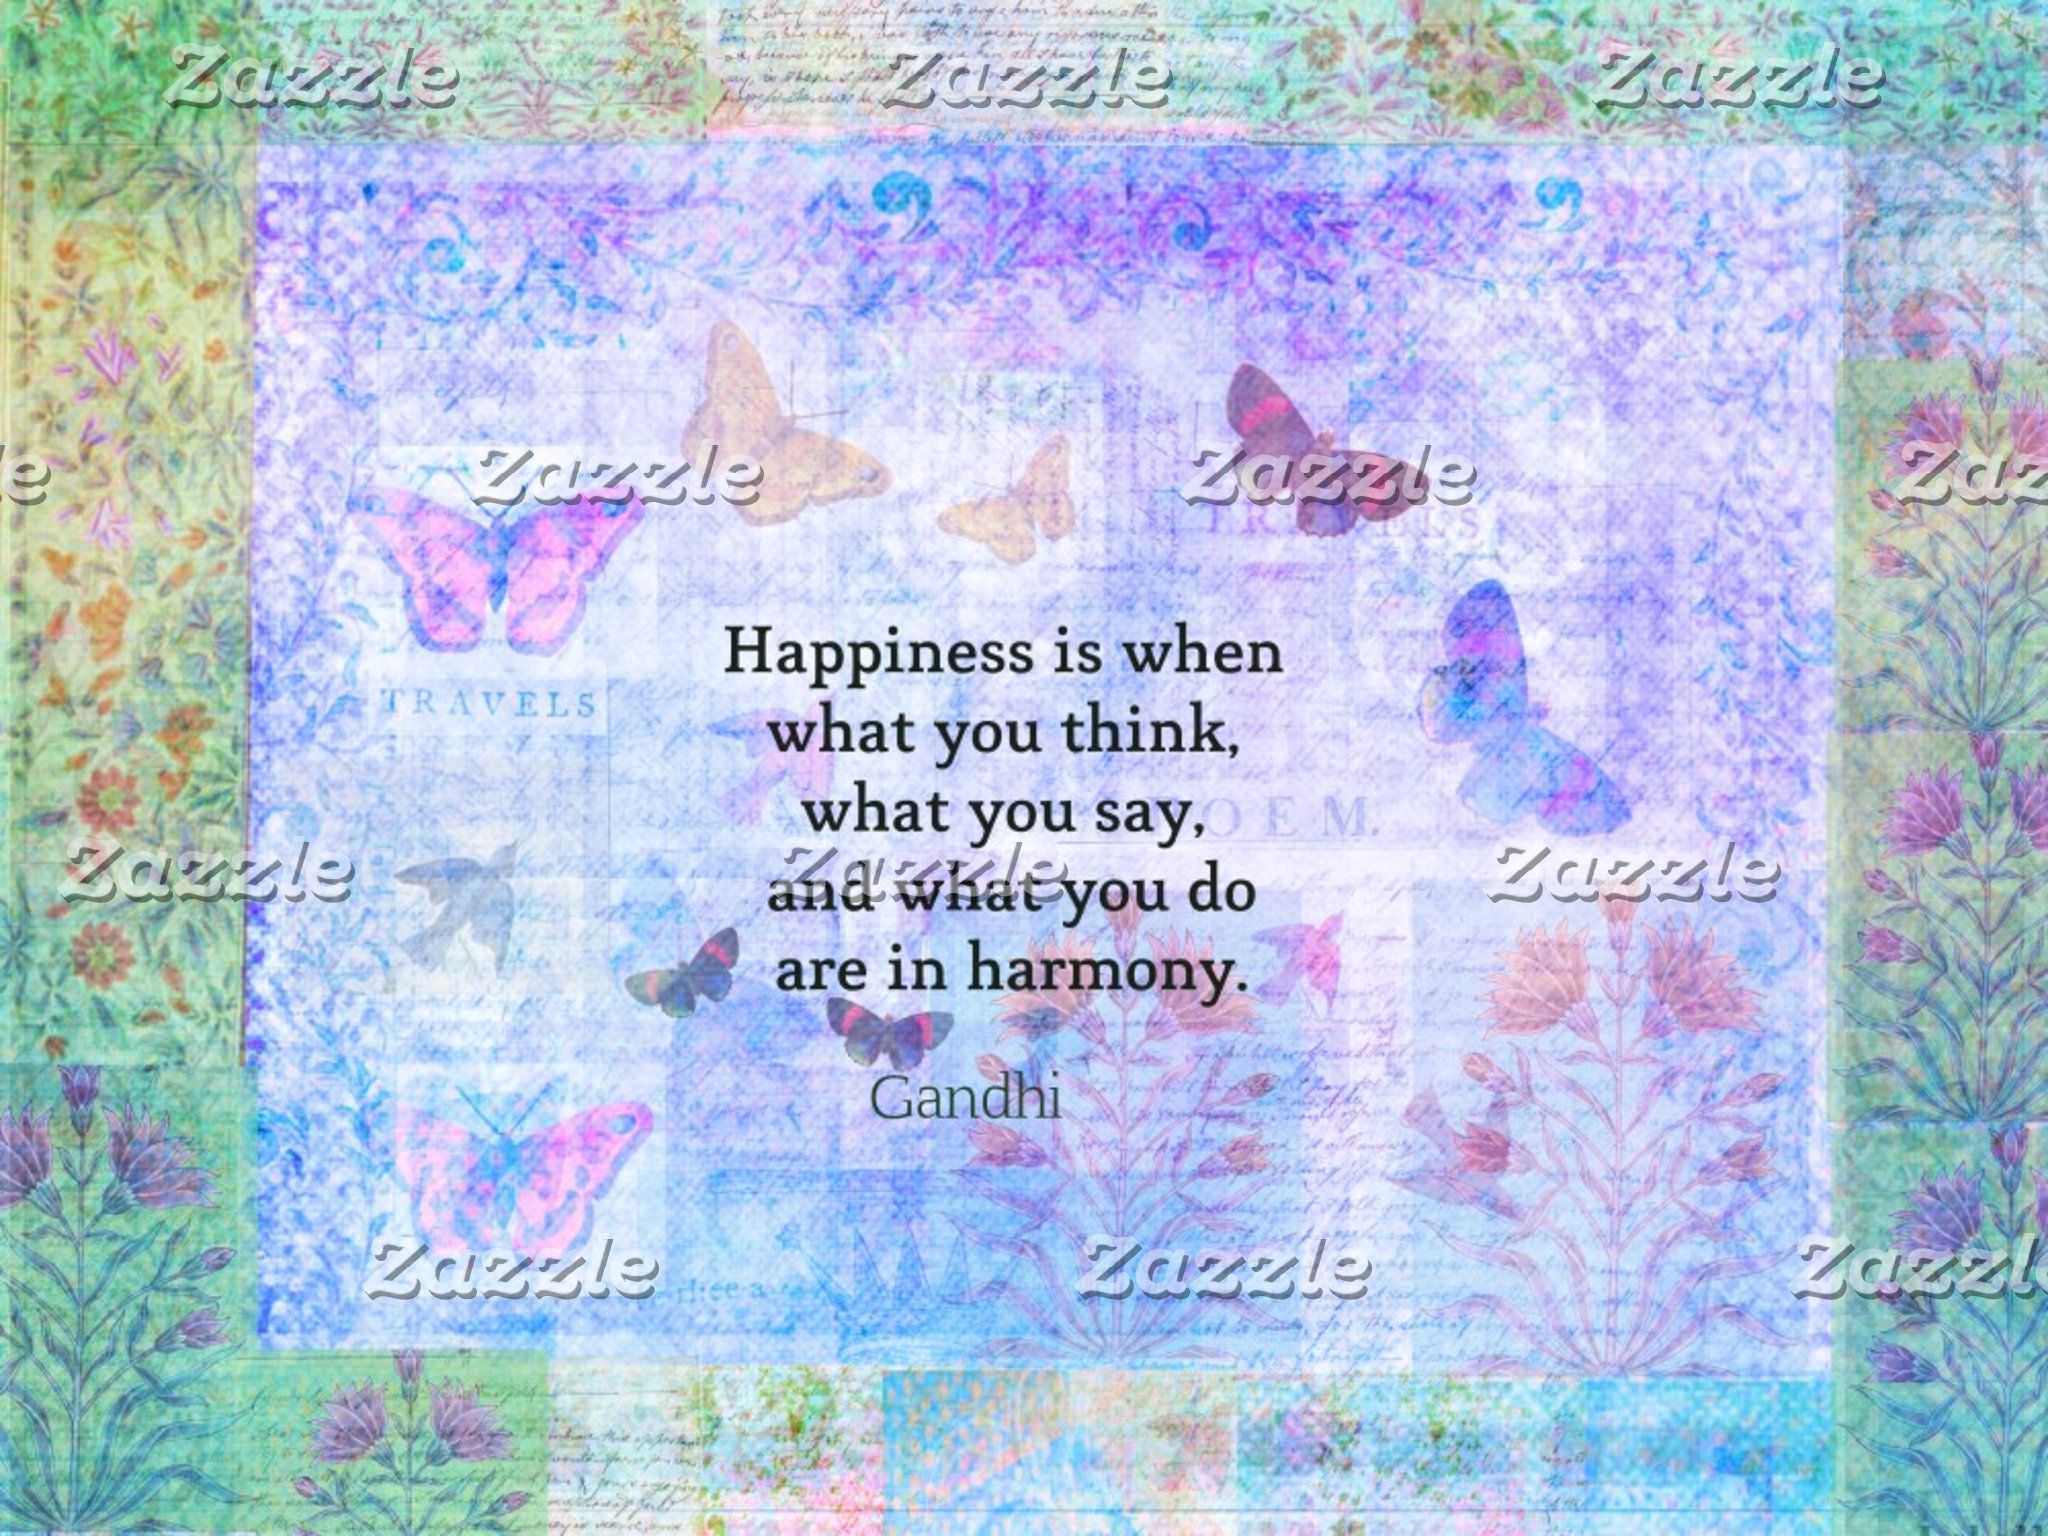 Happiness is when what you think, what you say